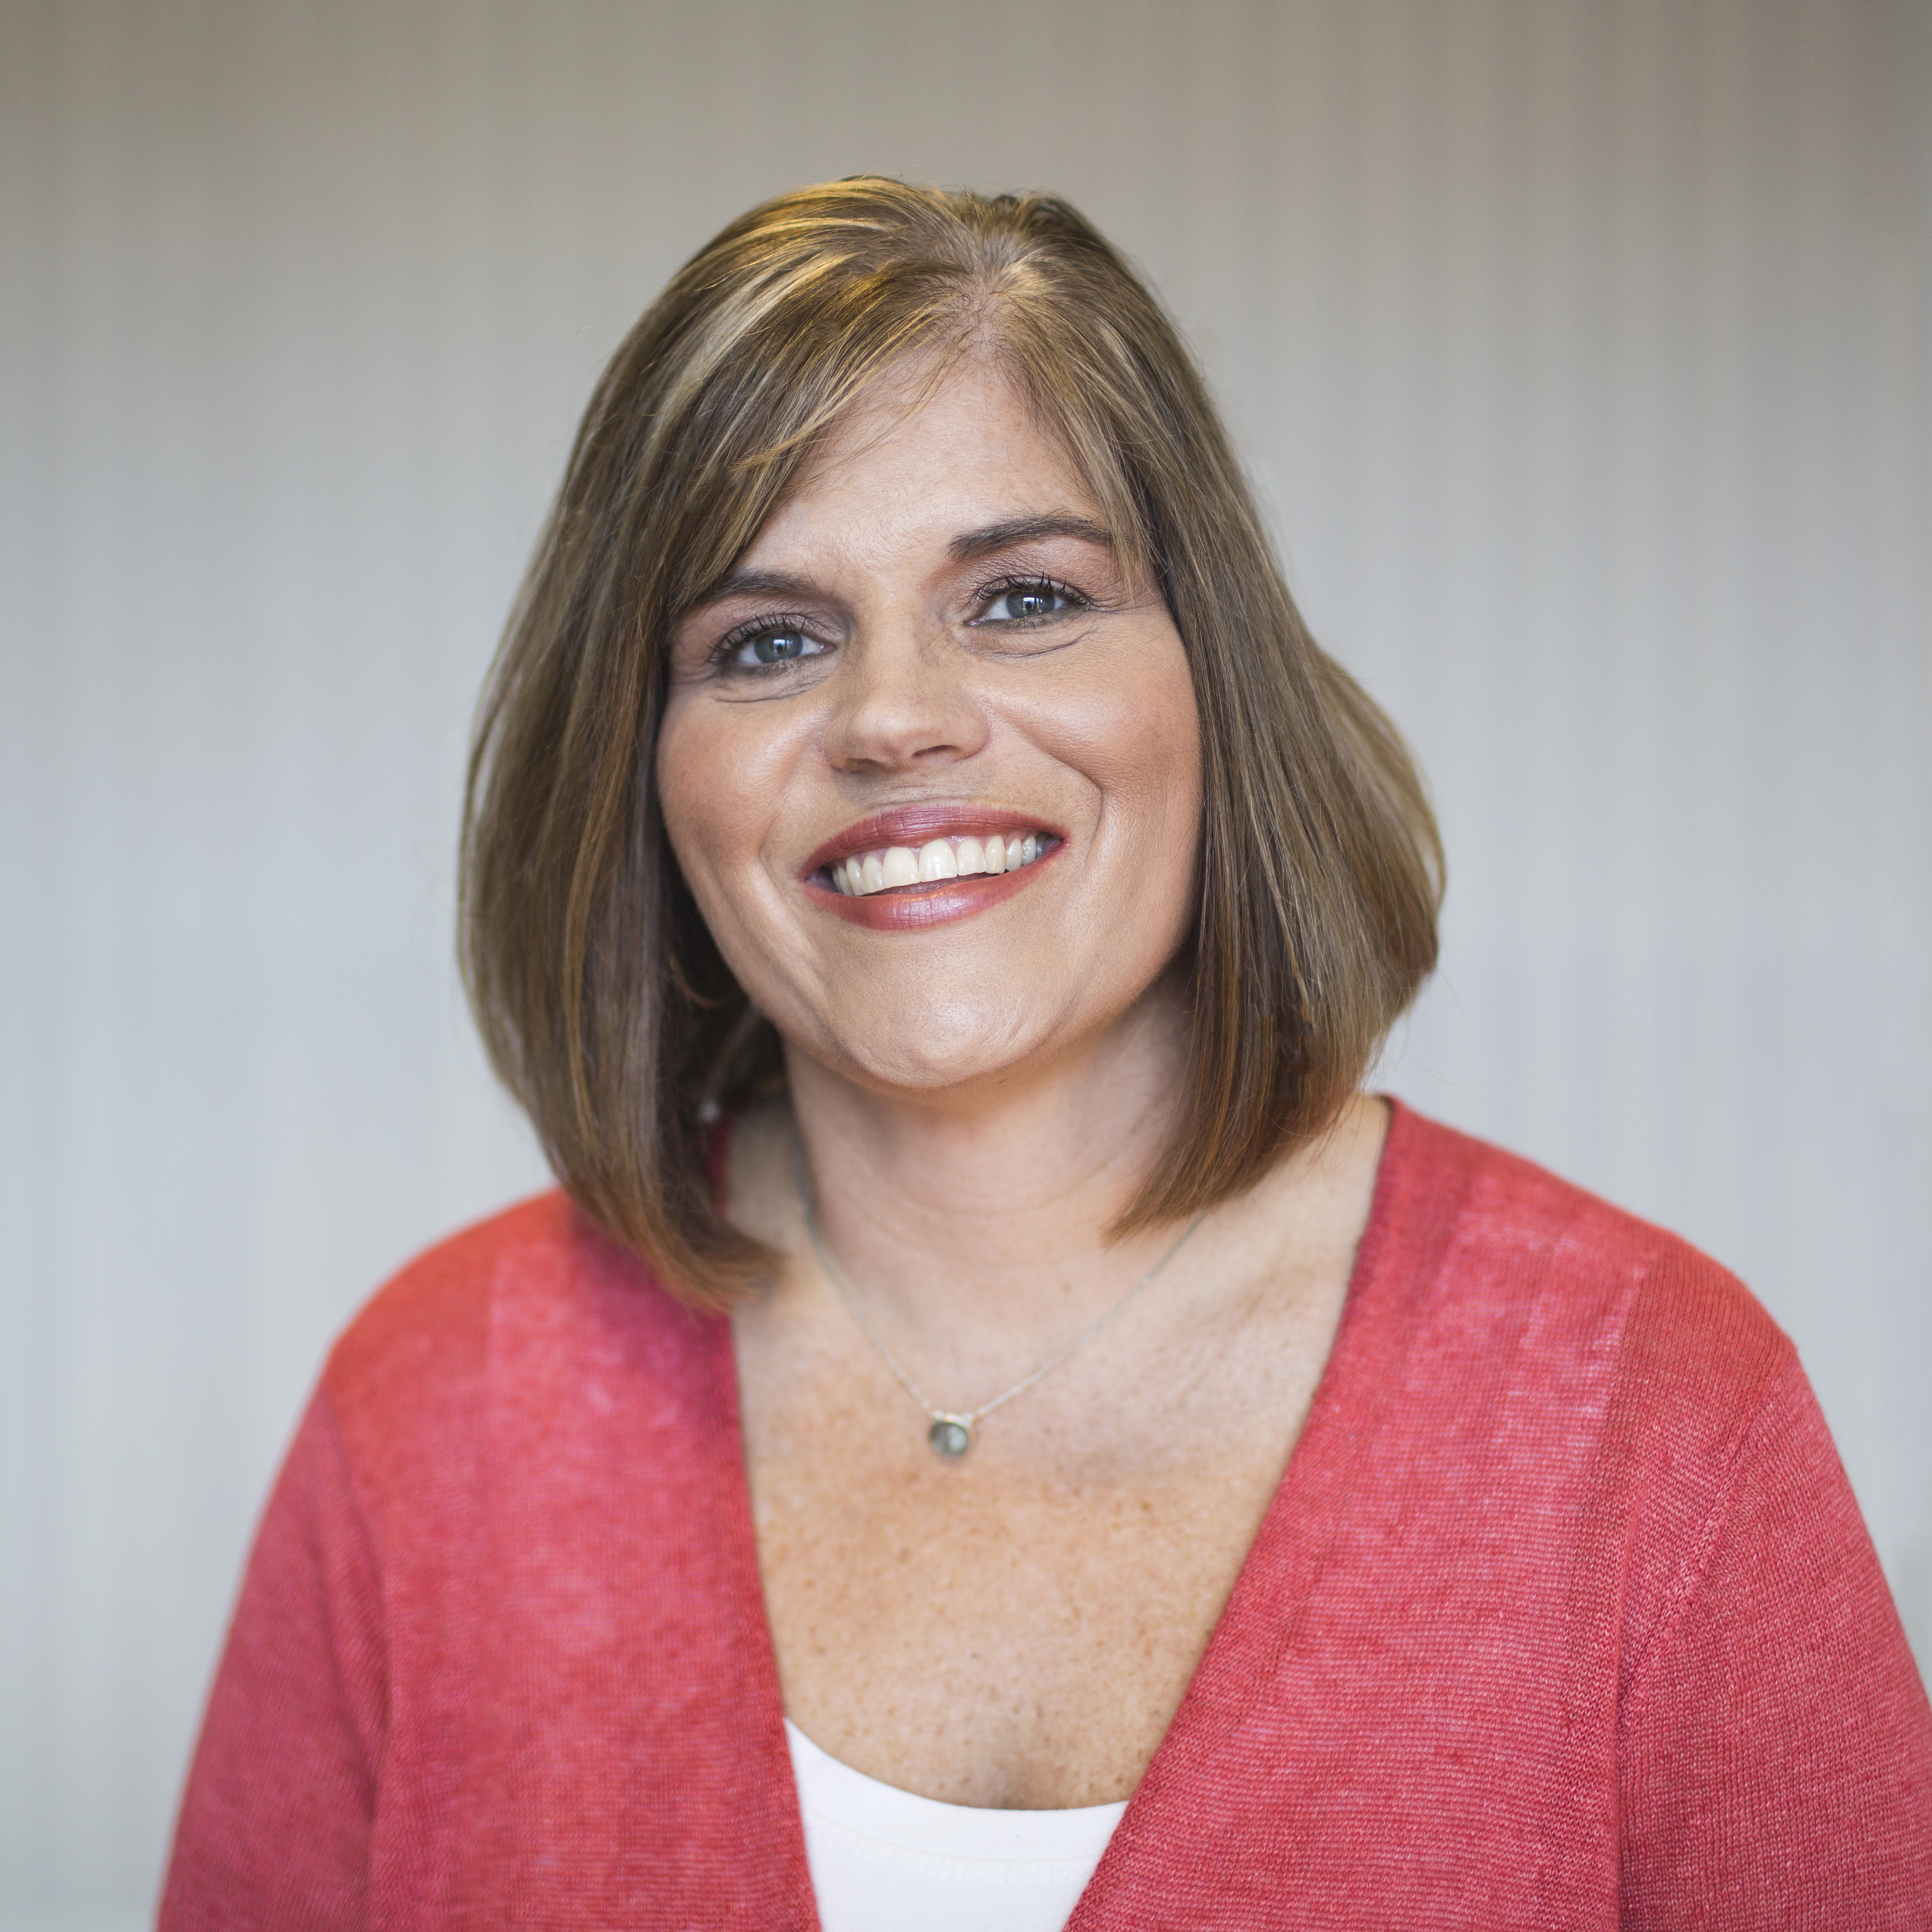 Meet our Senior Workplace Consultant, Susan Merwick